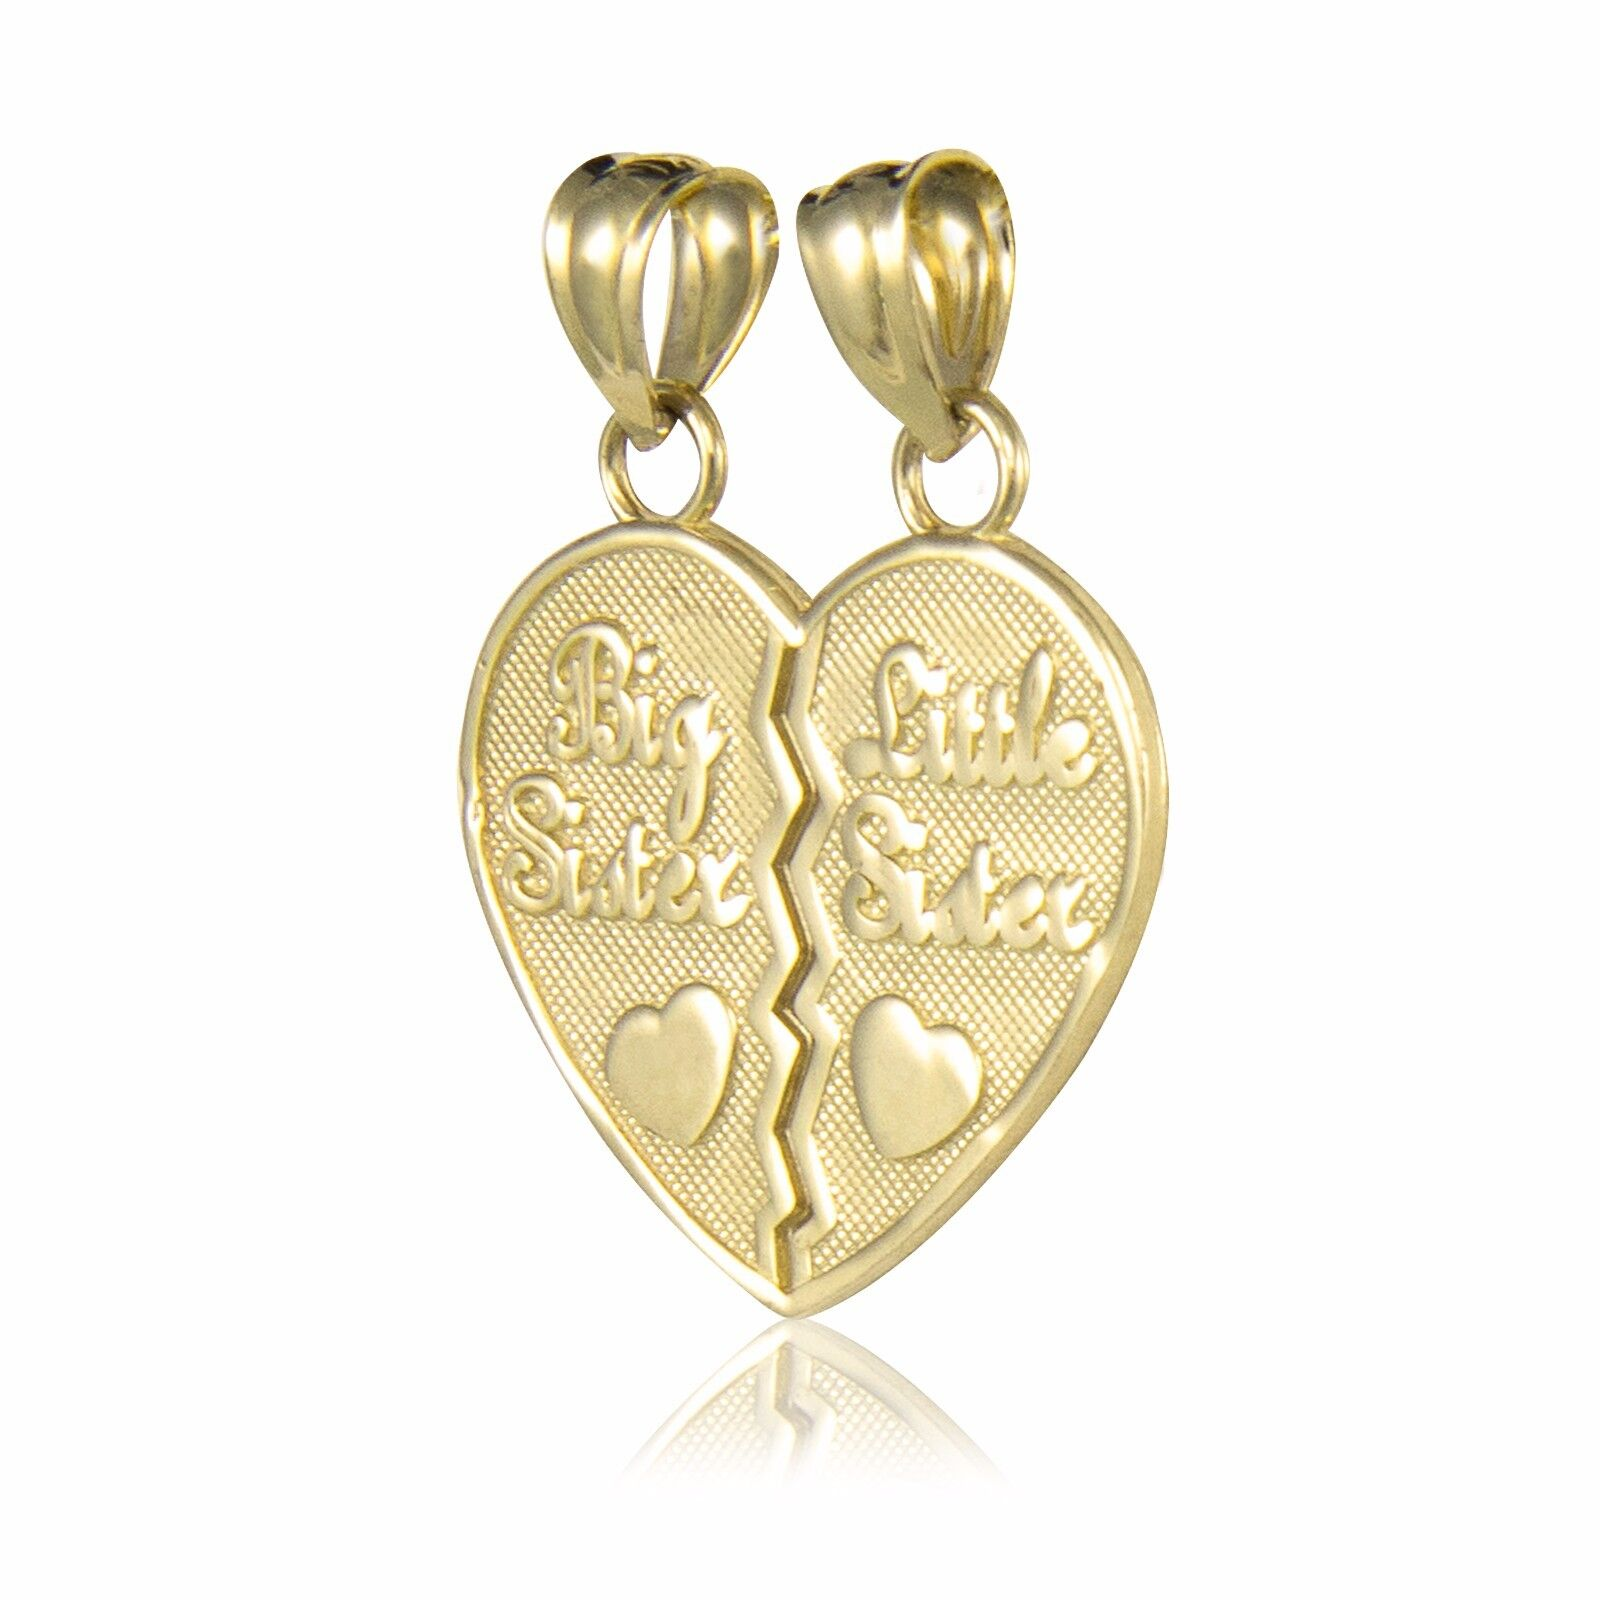 14k solid yellow gold big little sister half heart pendant love 14k solid yellow gold big little sister half heart pendant love necklace charm aloadofball Choice Image